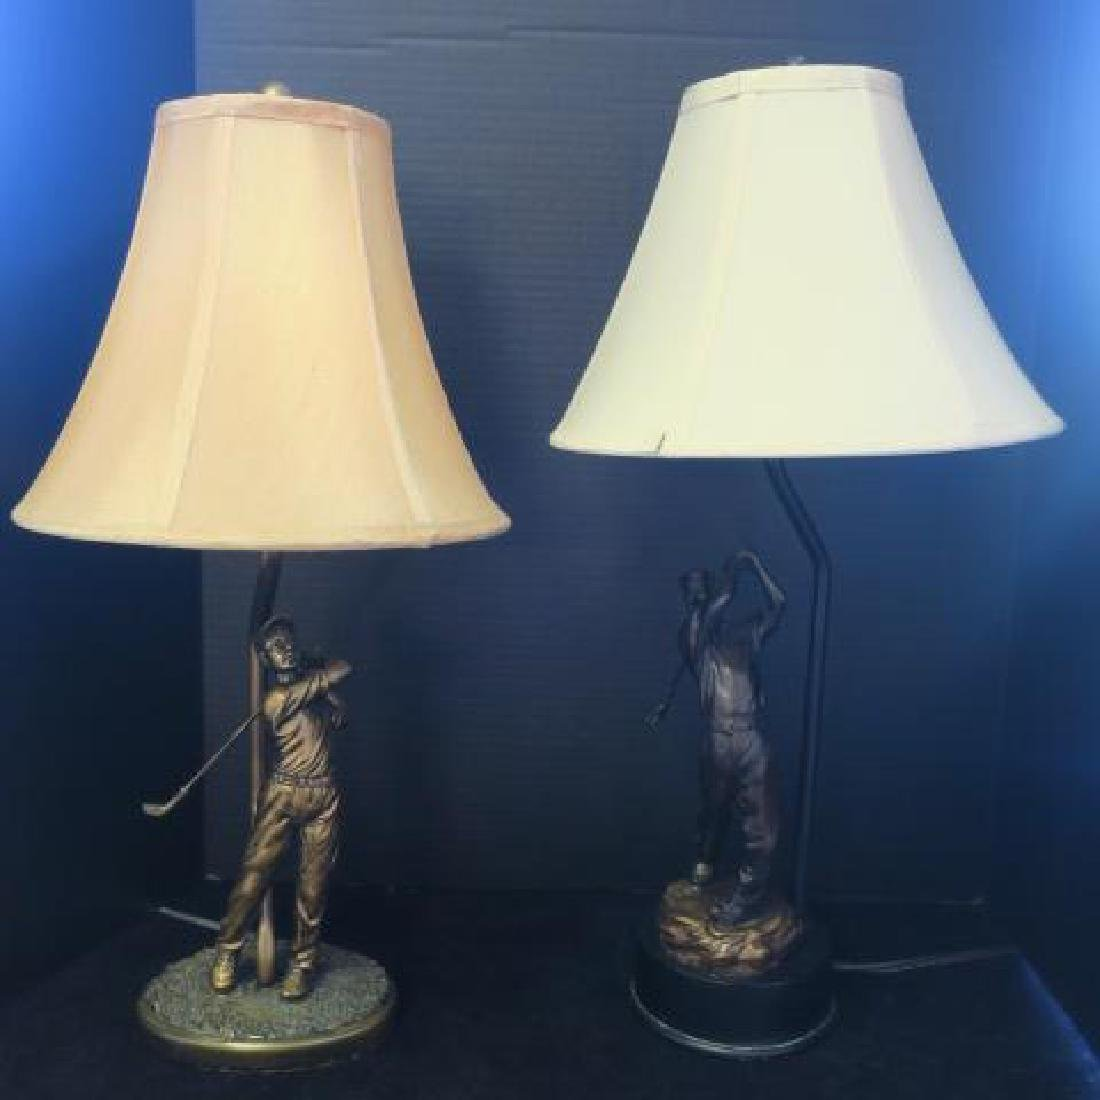 Two Men's Golfer Table Lamps with Shades: